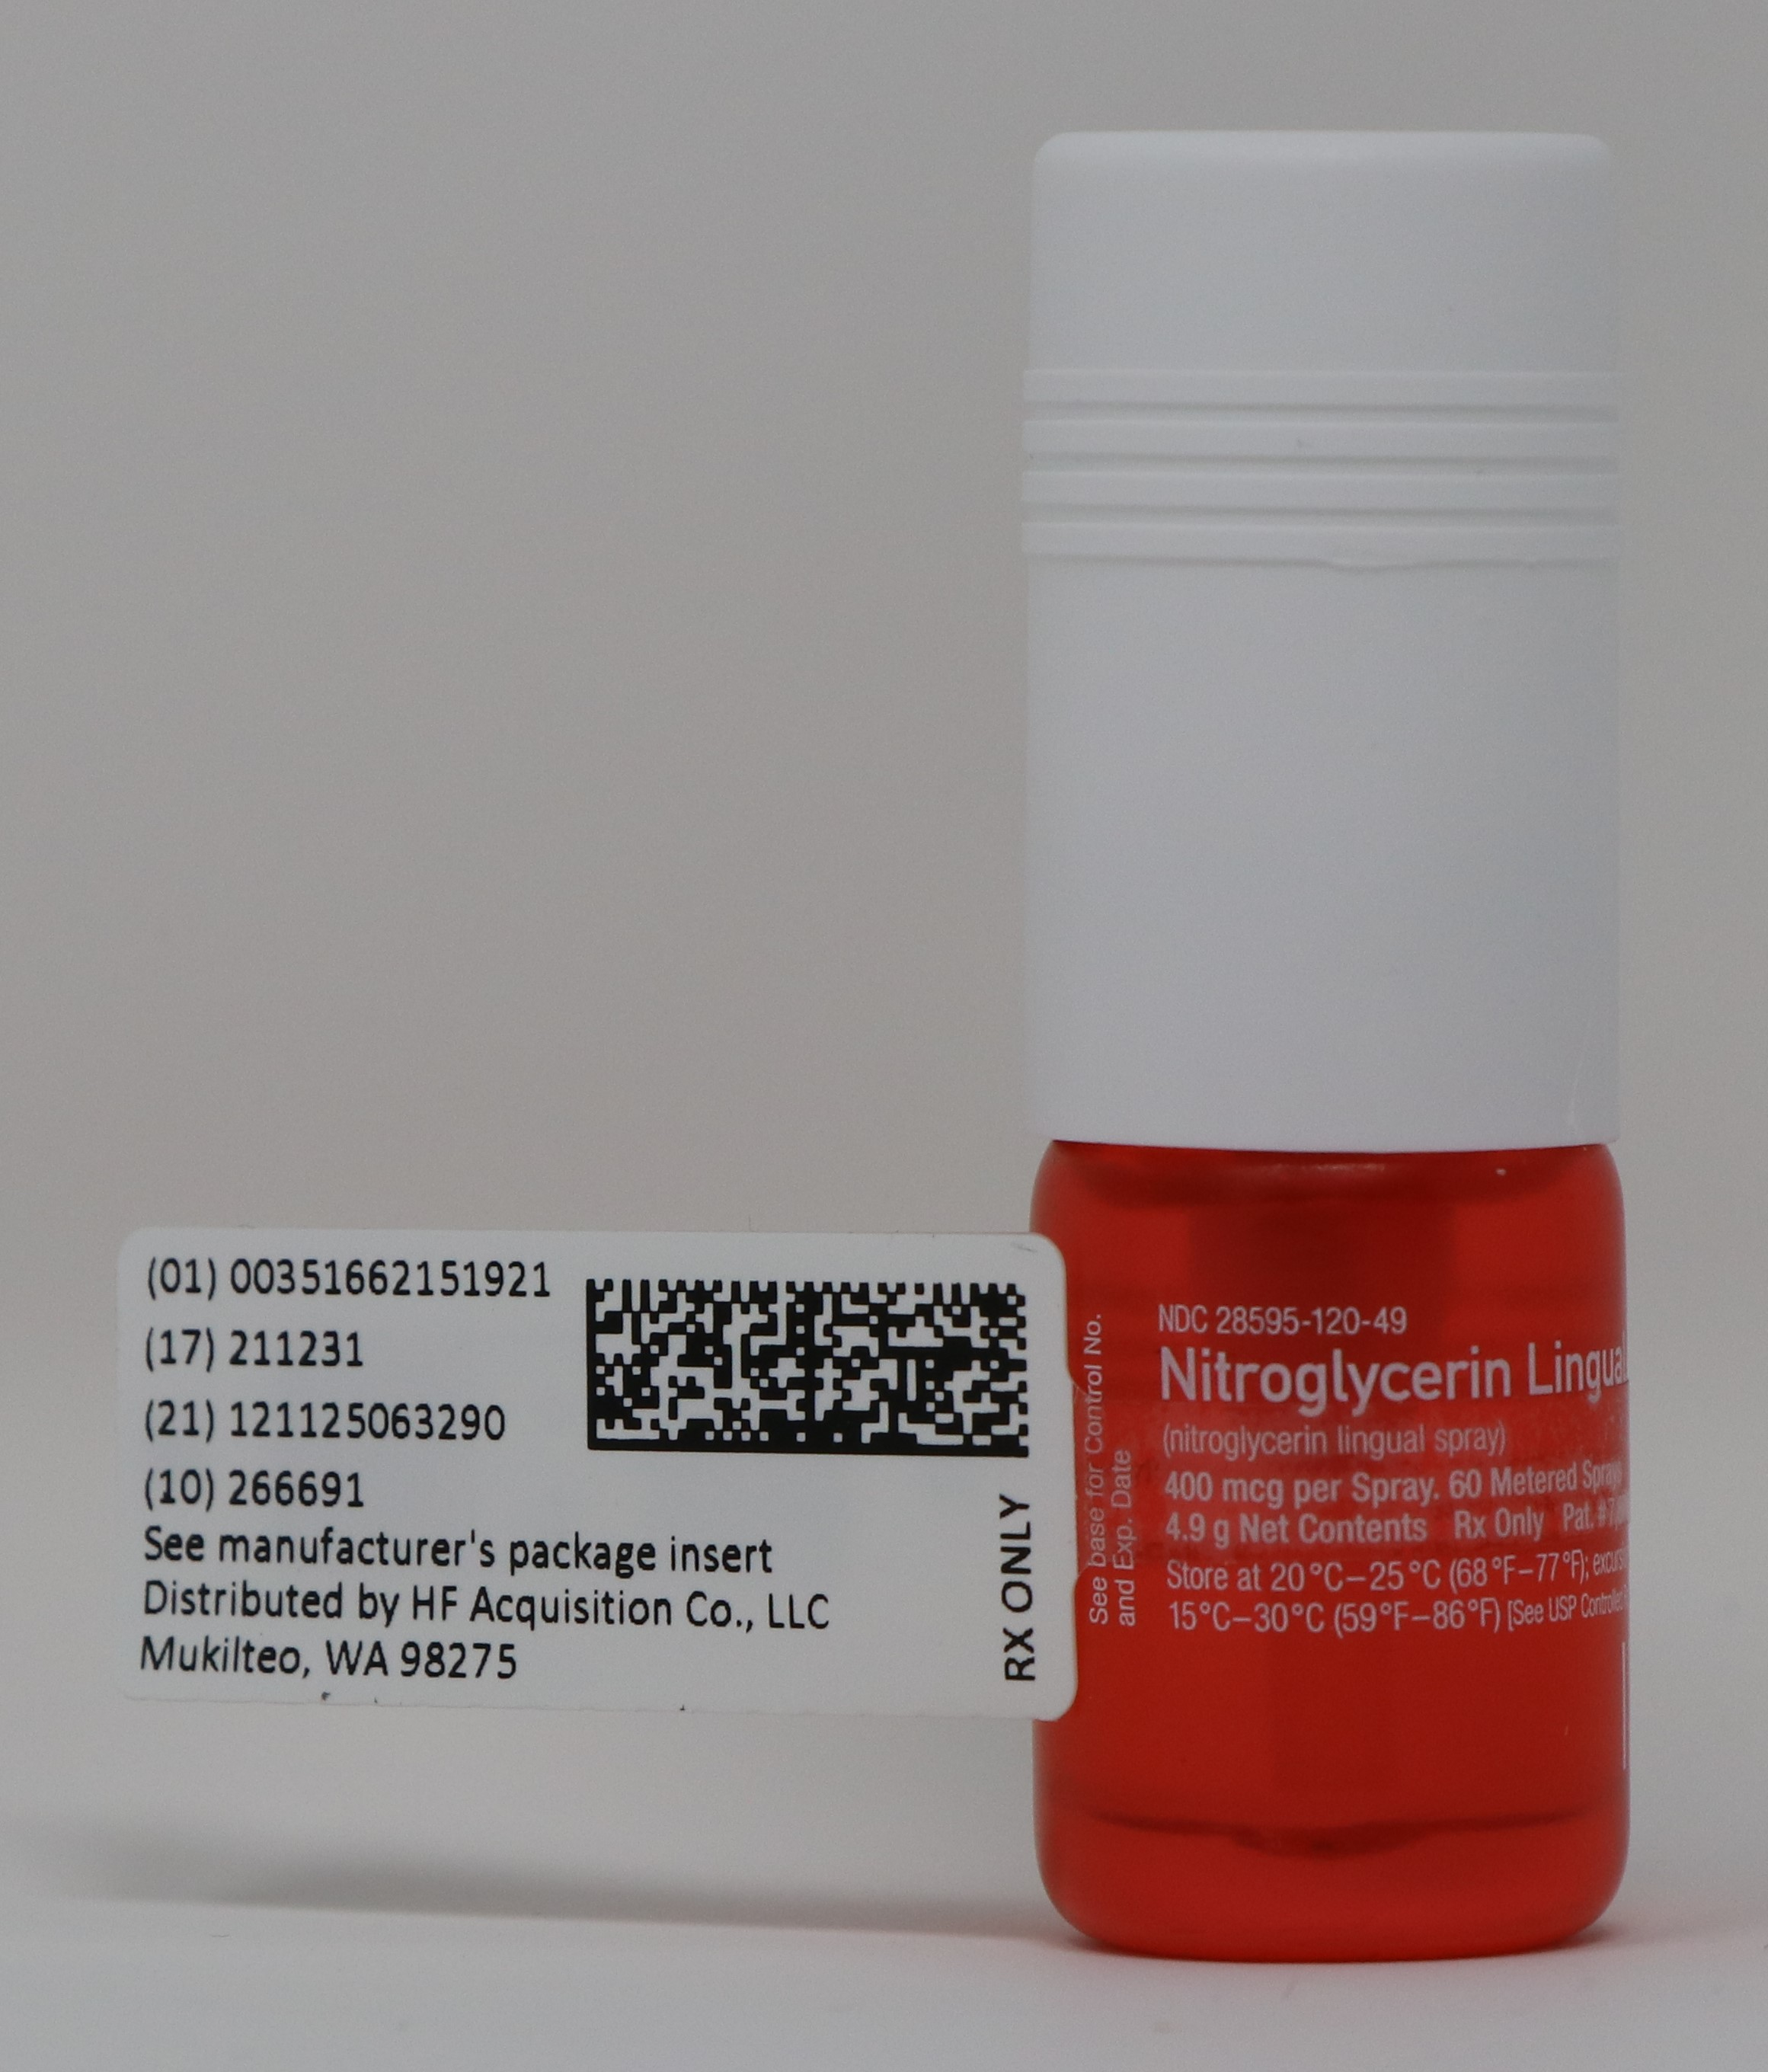 SERIALIZED UNBOXED LABEL